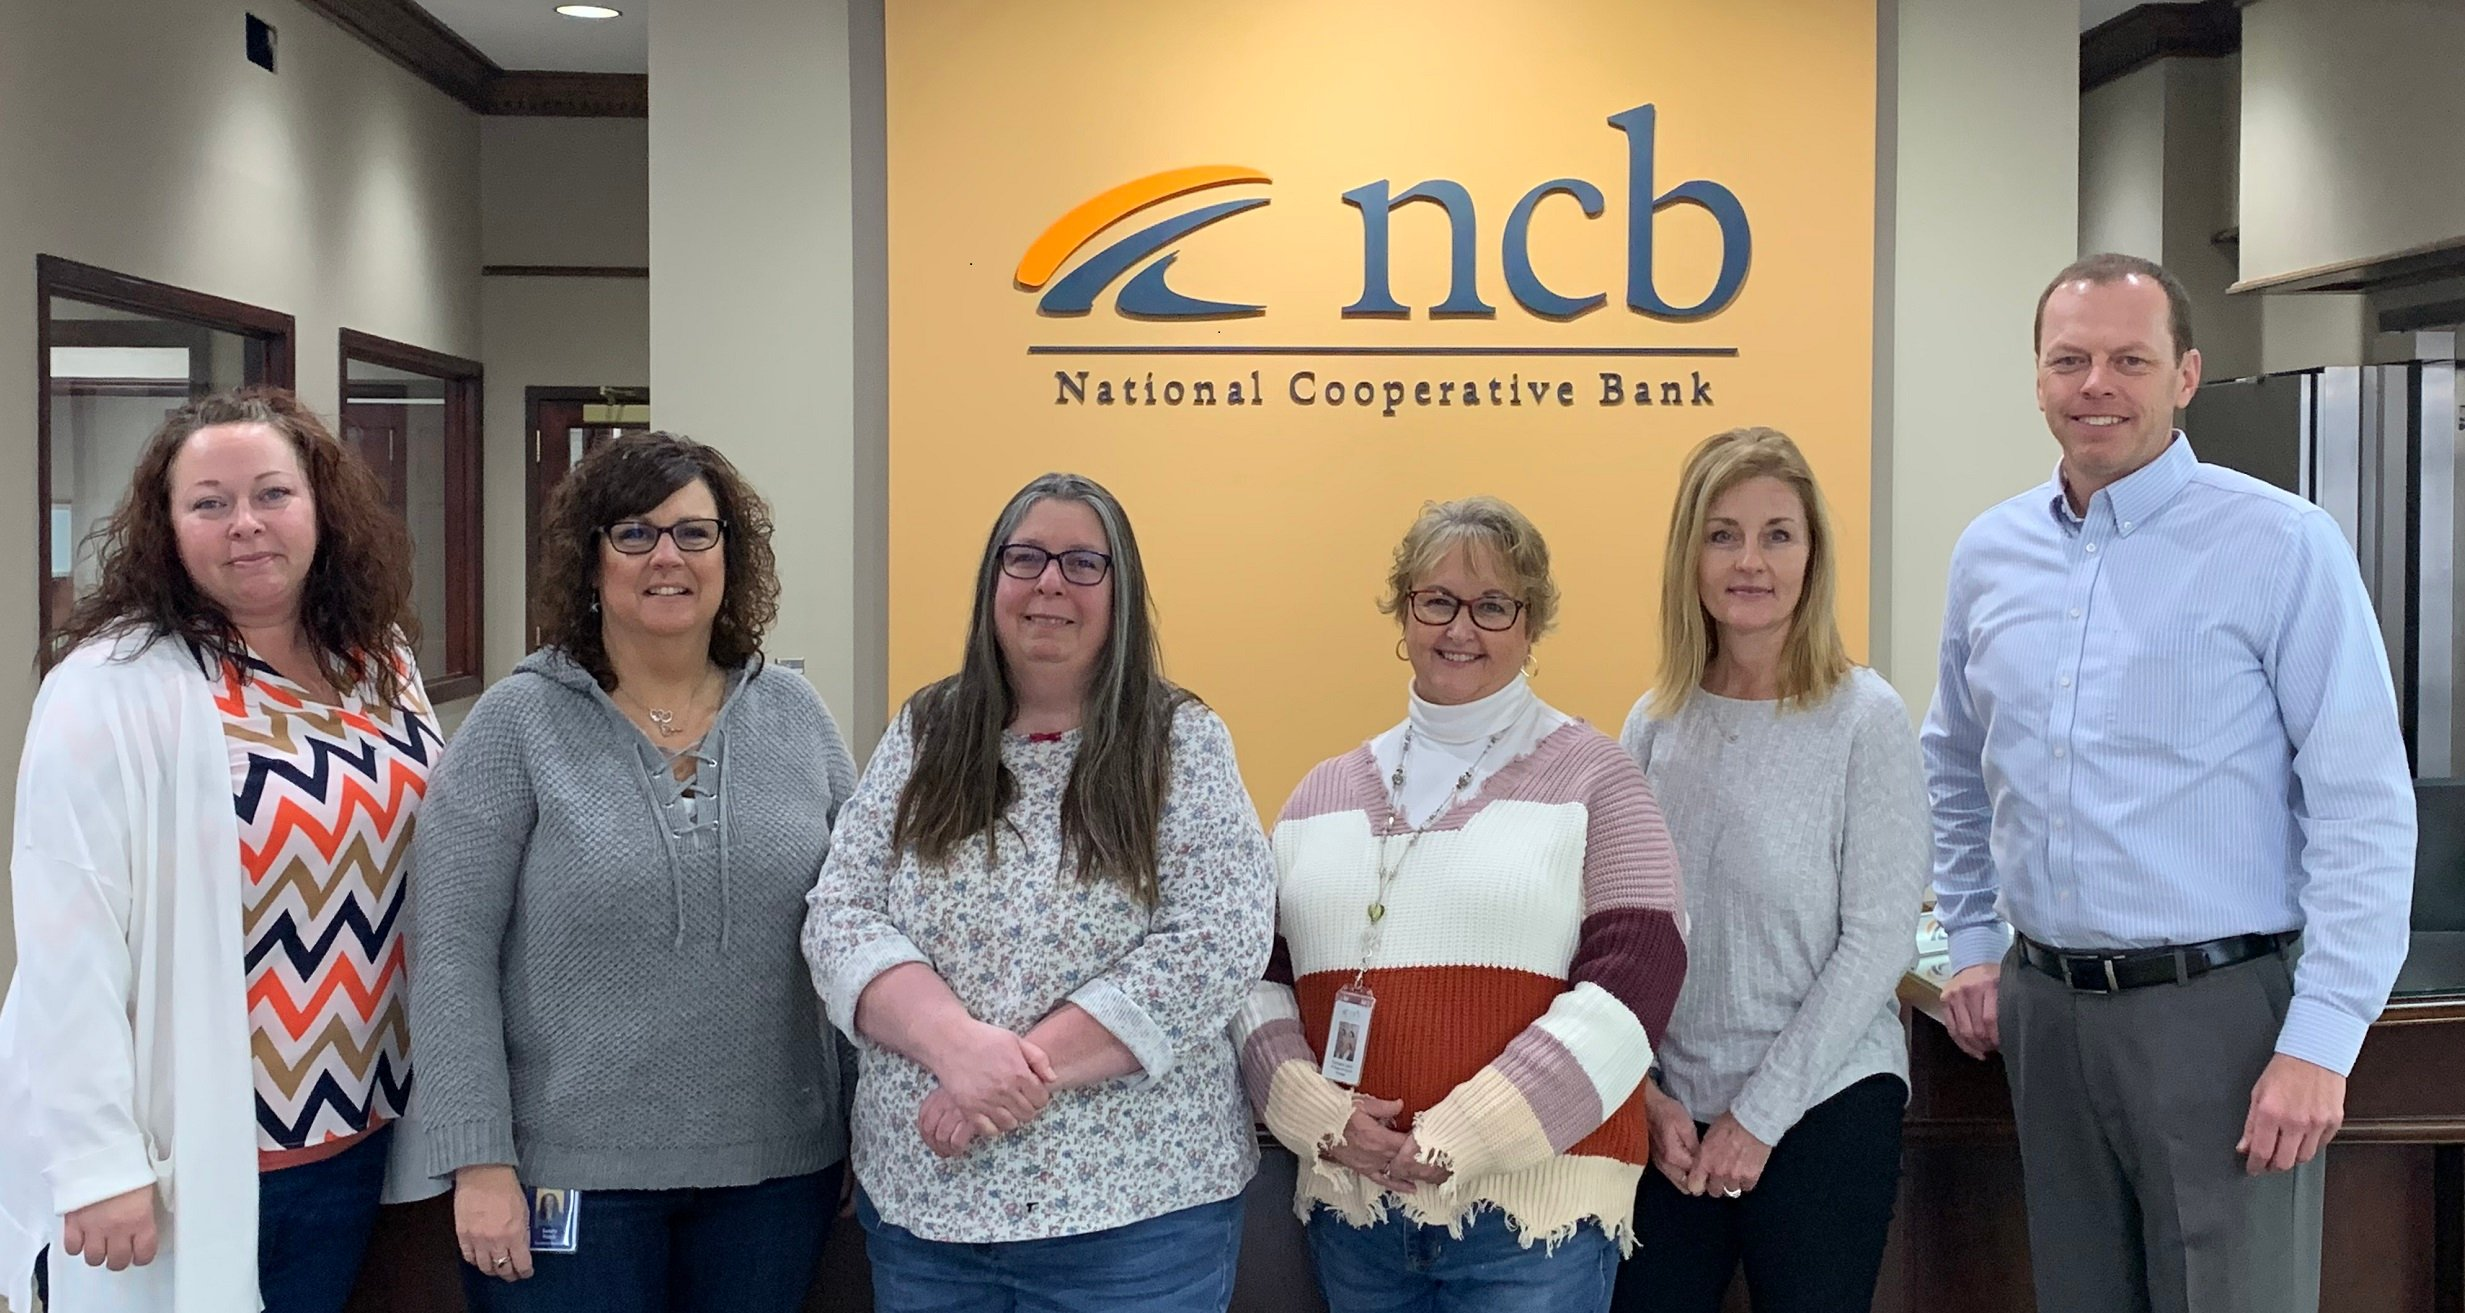 NCB Named as One of the 2021 Best Employers in Ohio